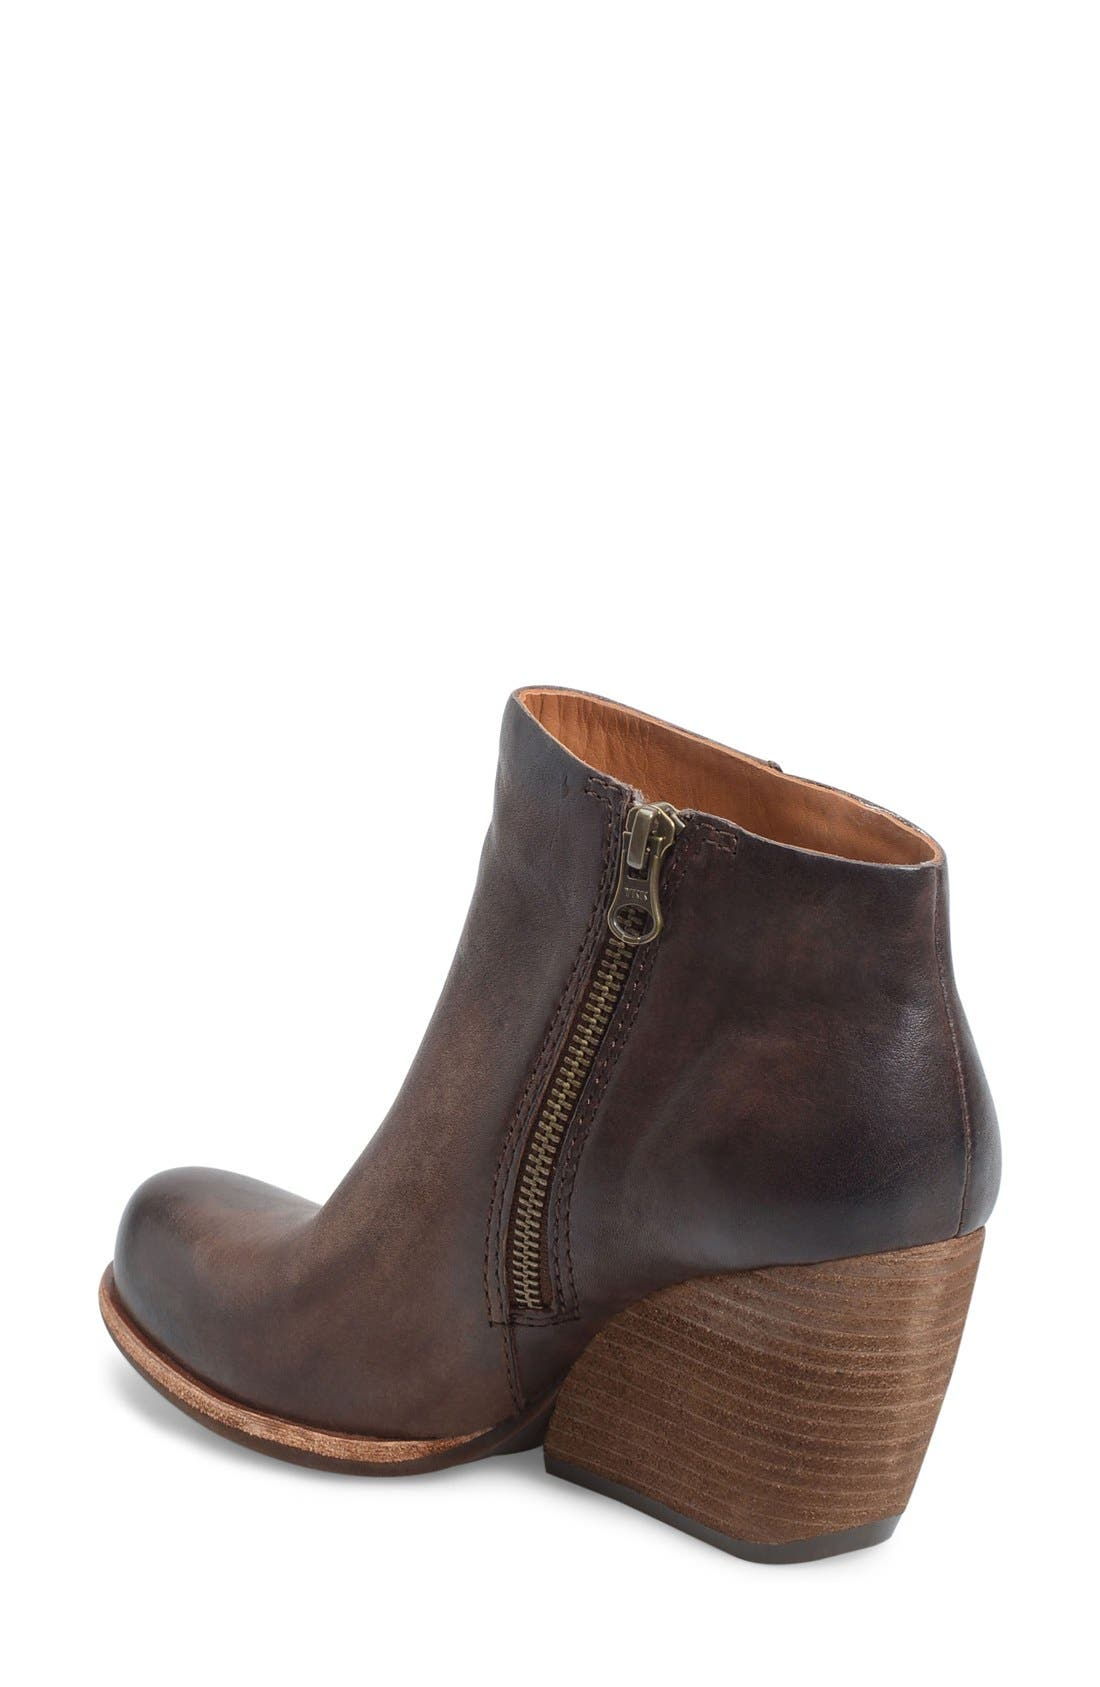 'Natalya' Burnished Leather Demi Wedge Boot,                             Alternate thumbnail 2, color,                             Dark Brown